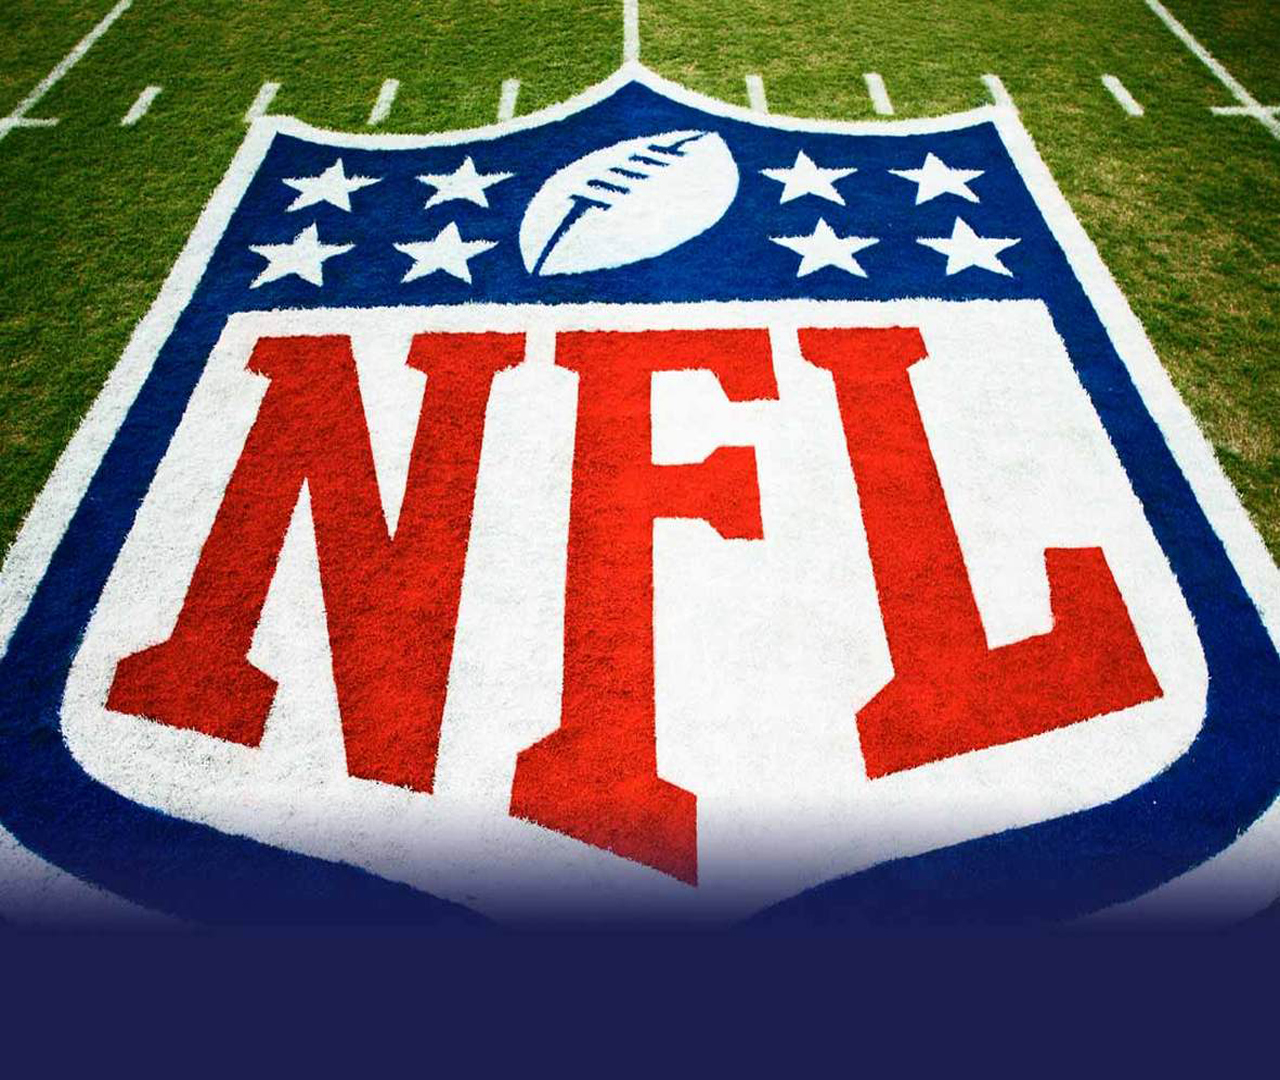 nfl hd wallpapers for iphone 5 for downloading some hd james 1280x1080